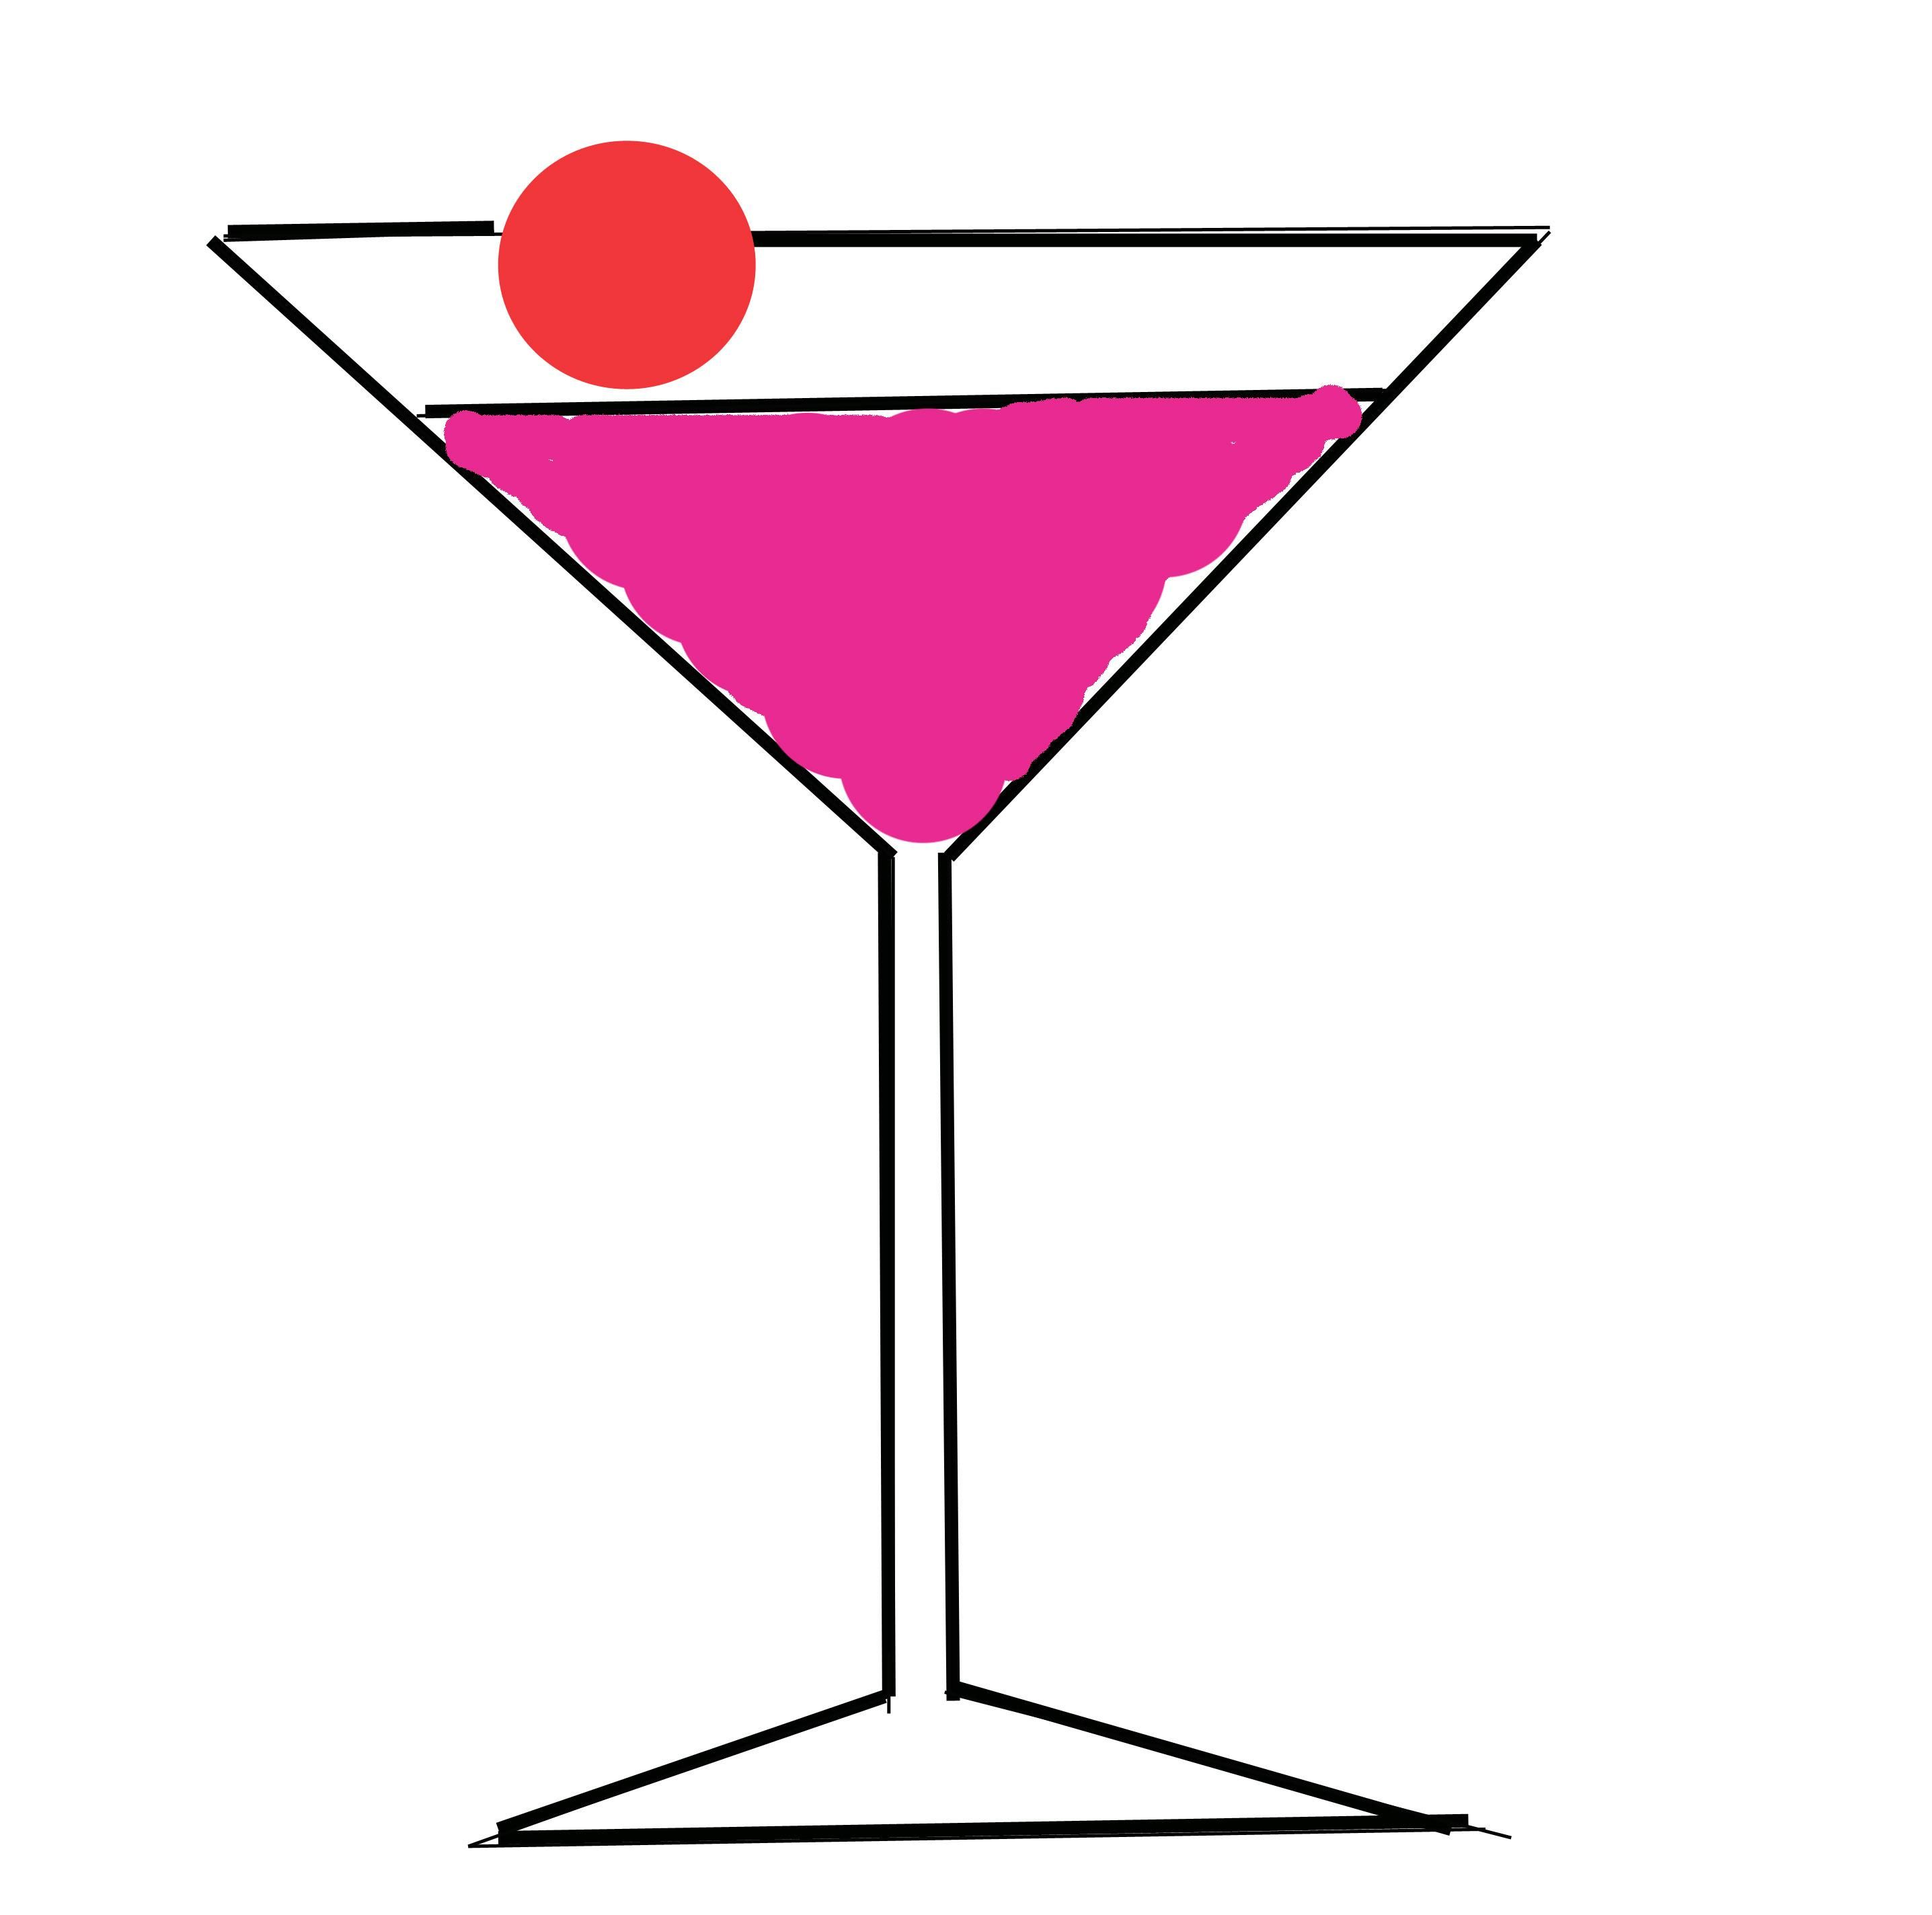 martini glass cocktail glass clip art cocktails pinterest rh pinterest com martini glass clipart black and white martini glass clip art free